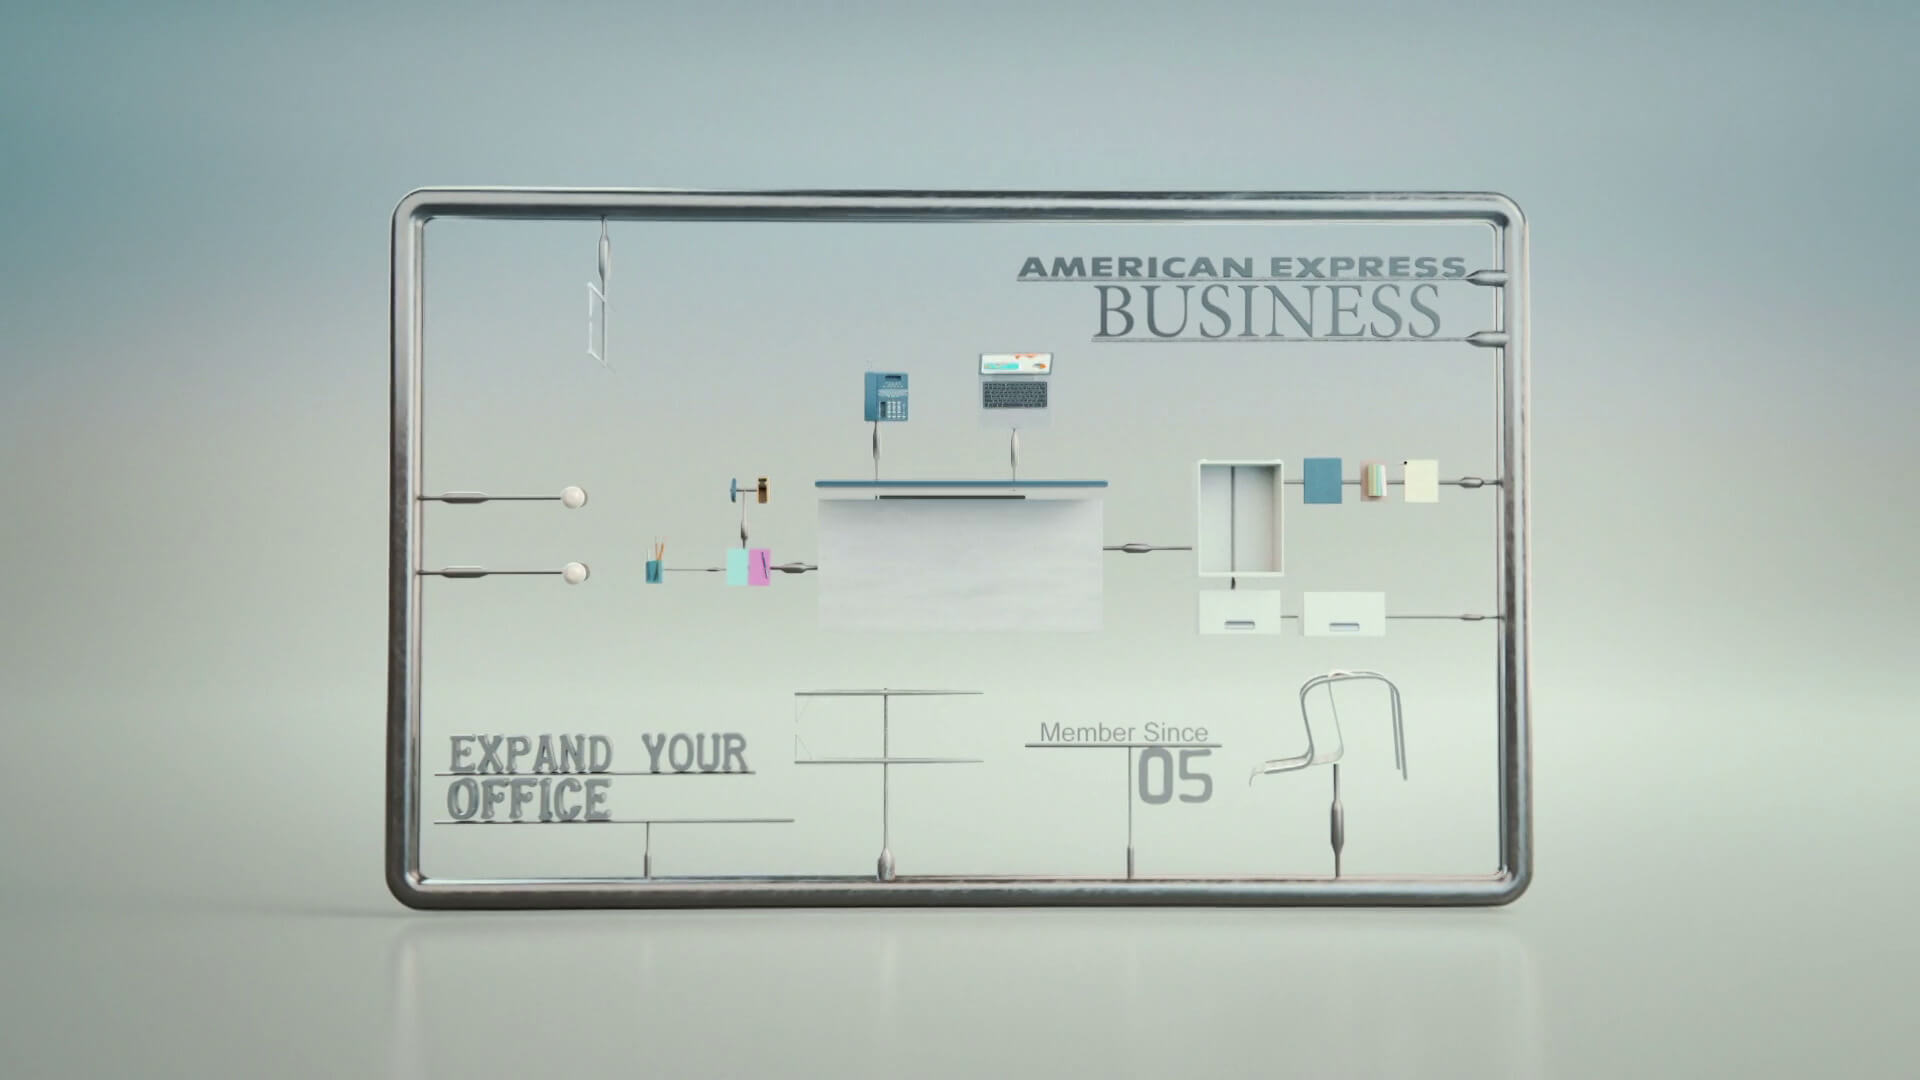 roofstudio_american-express_05-0